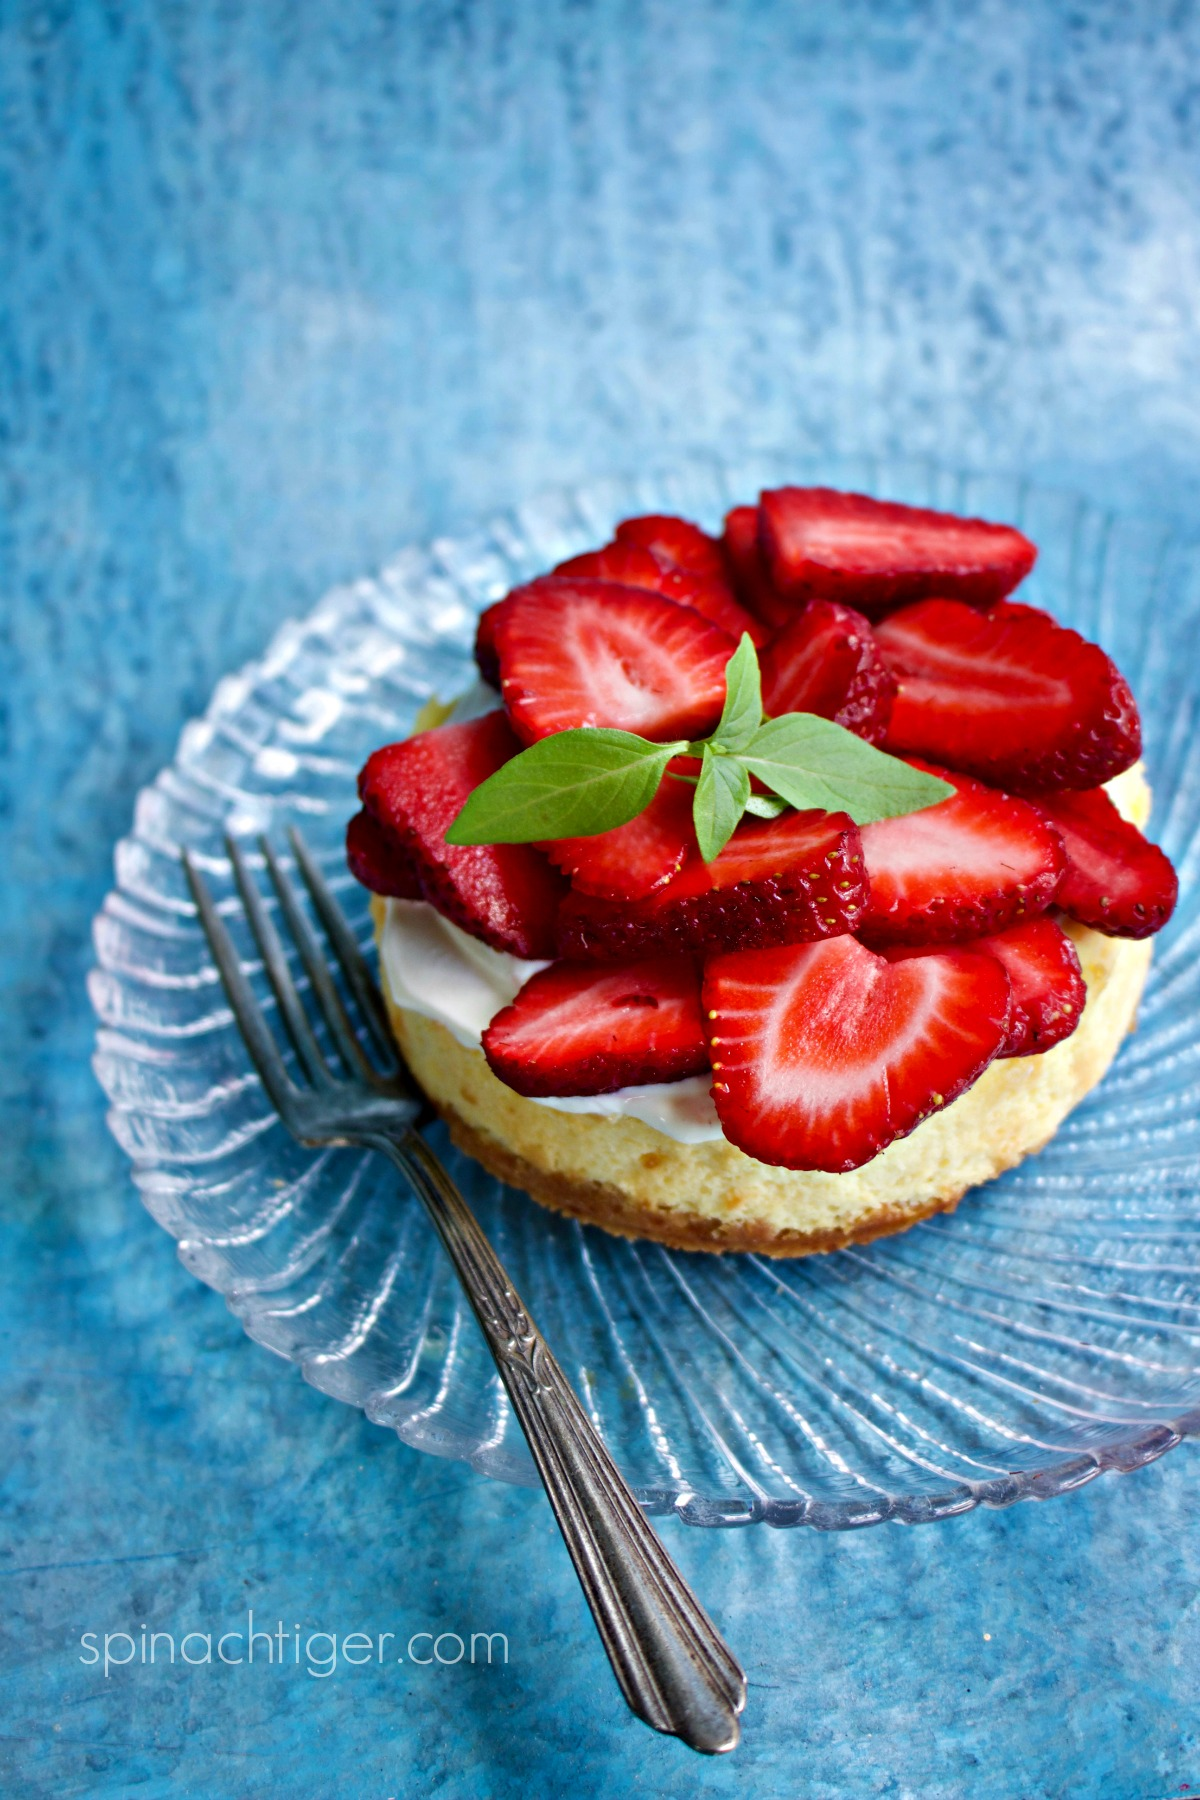 Keto Cheesecake for Two with Strawberries from Spinach Tiger